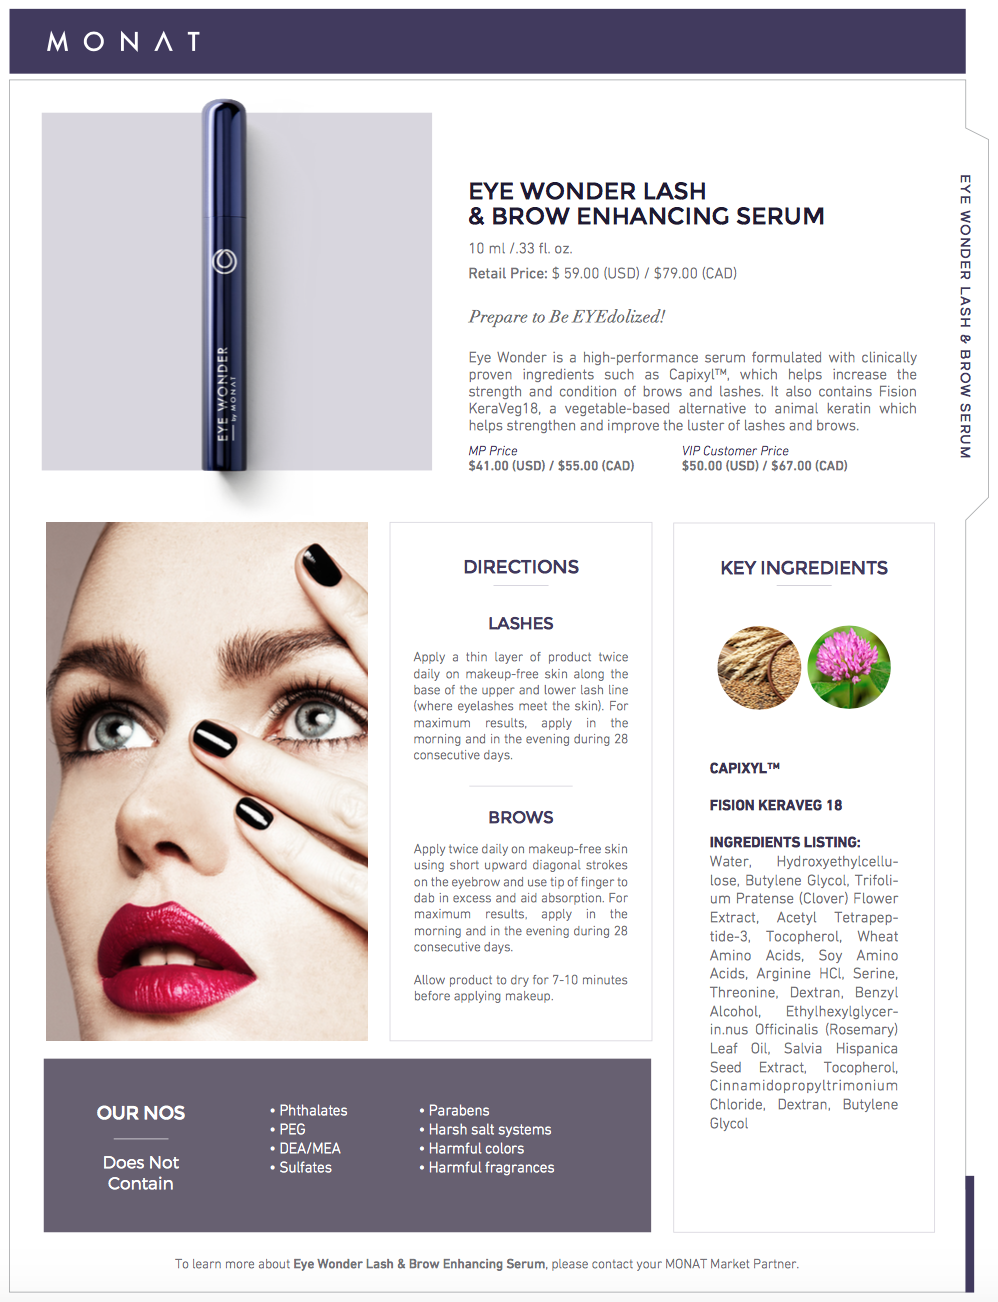 cf60b9ff824 Eye Wonder is a high-performance serum which helps increase the strength  and luster of